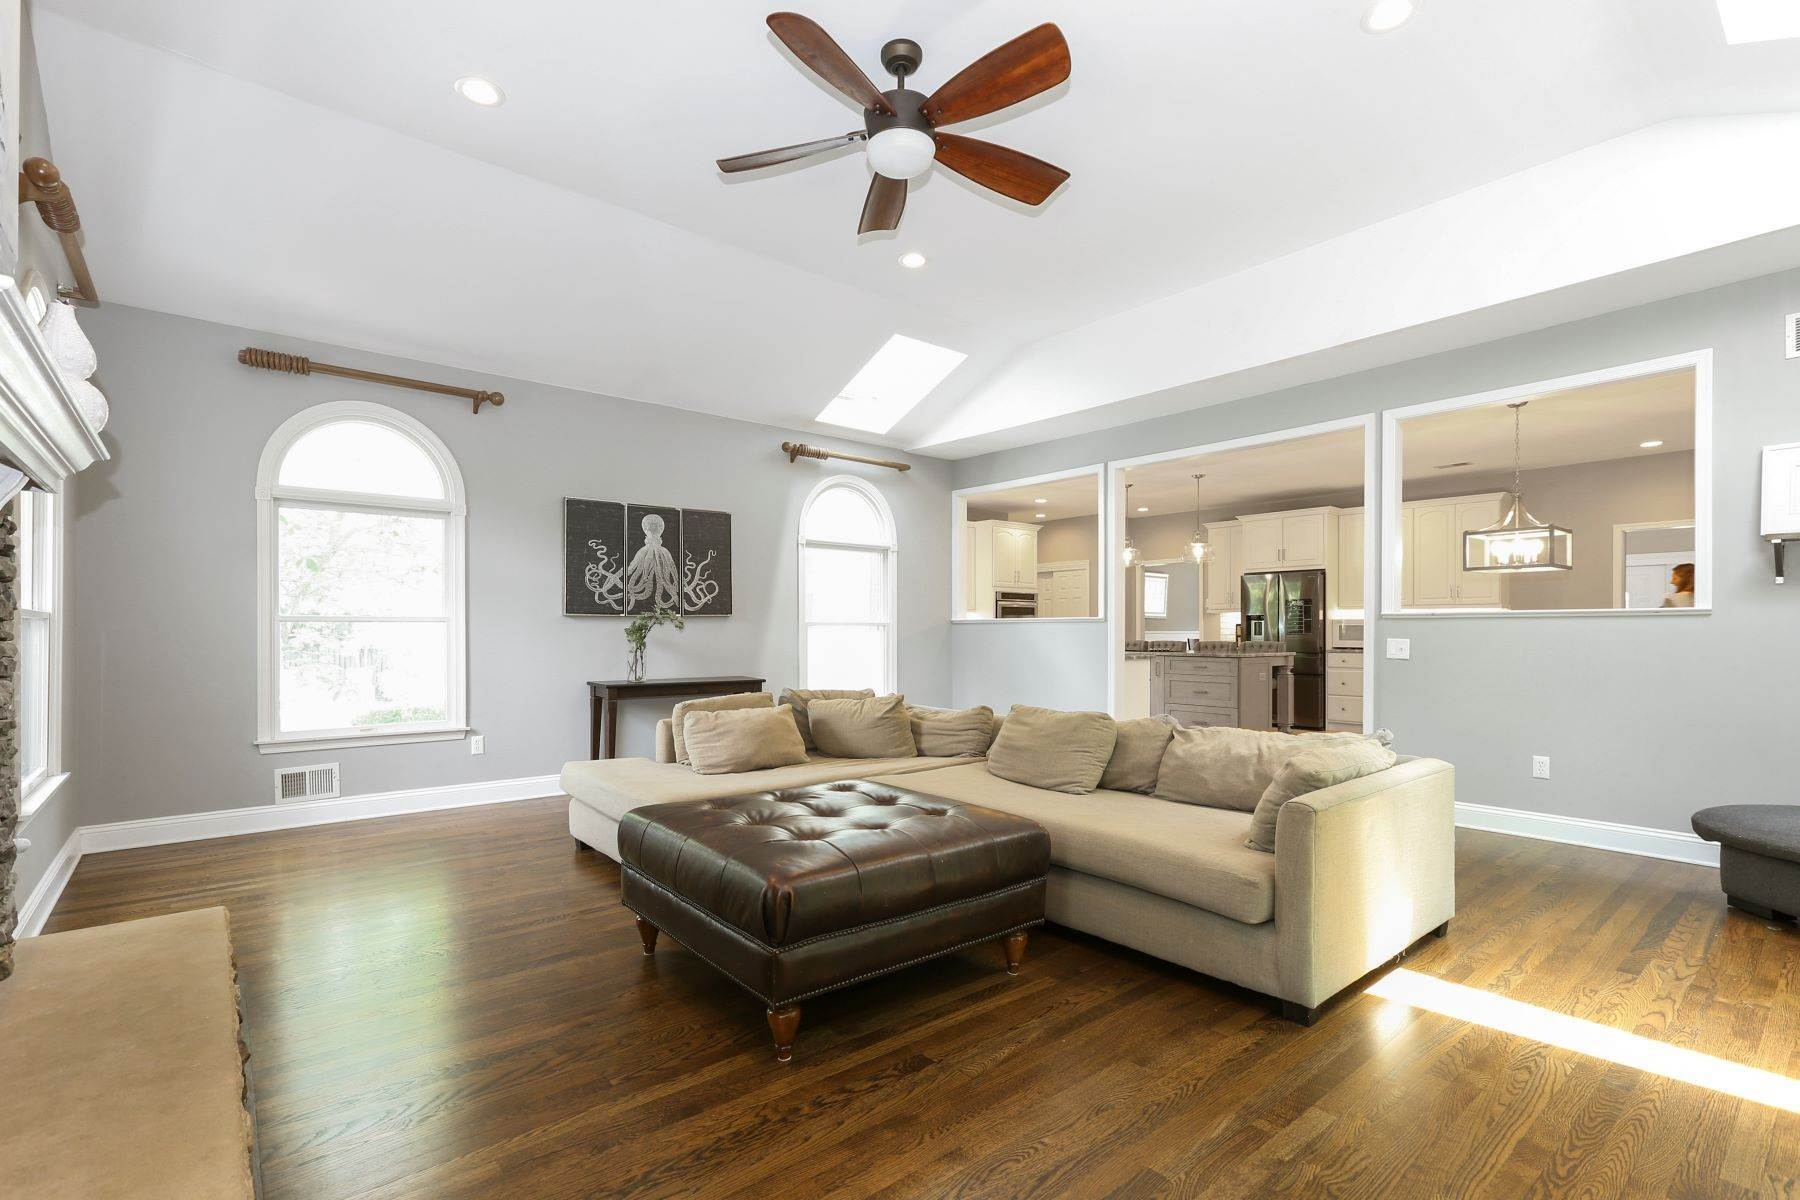 6. Single Family Homes for Sale at Stellar 5-bedroom Home With A Lush Pool Setting 75 Franklin Drive, Belle Mead, New Jersey 08502 United States